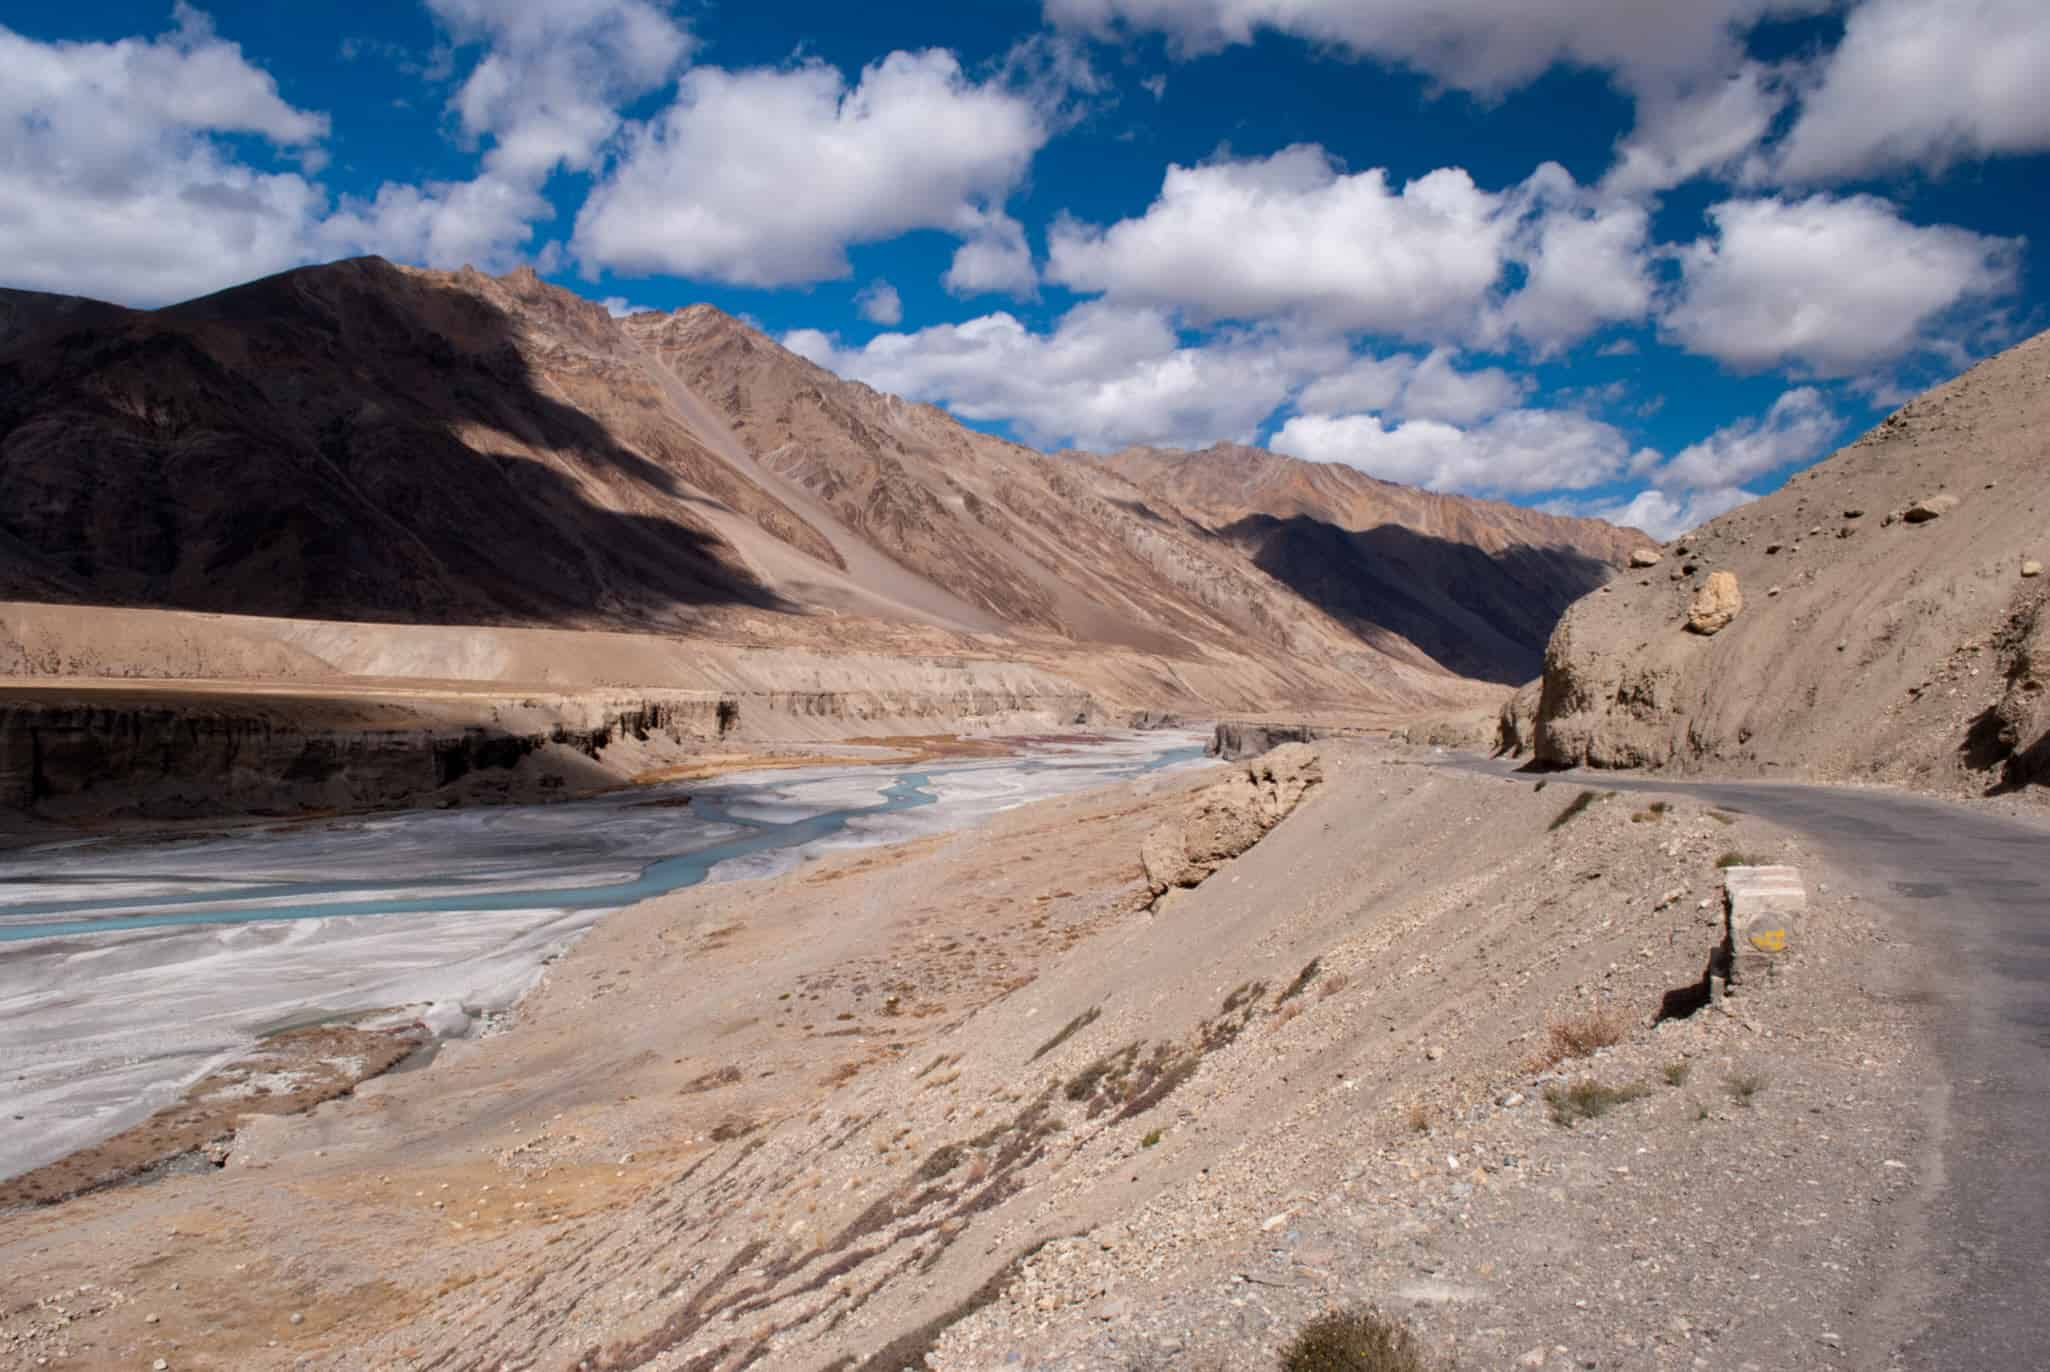 The beautiful views on Manali Leh Highway